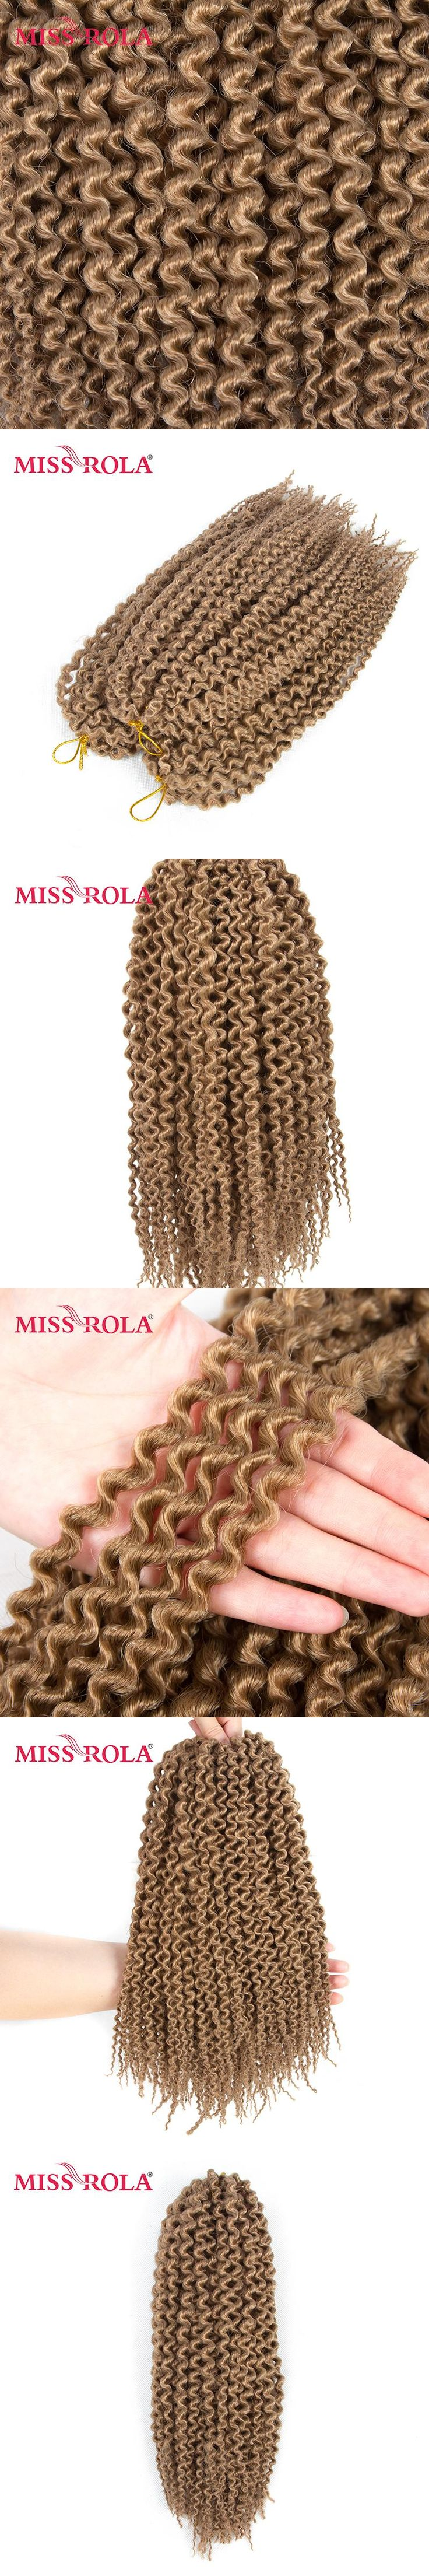 Miss Rola 27# Havana Twist Braids Hair 28roots/pack Kanekalon Low Temperature Synthetic Hair Extensions for Black Women